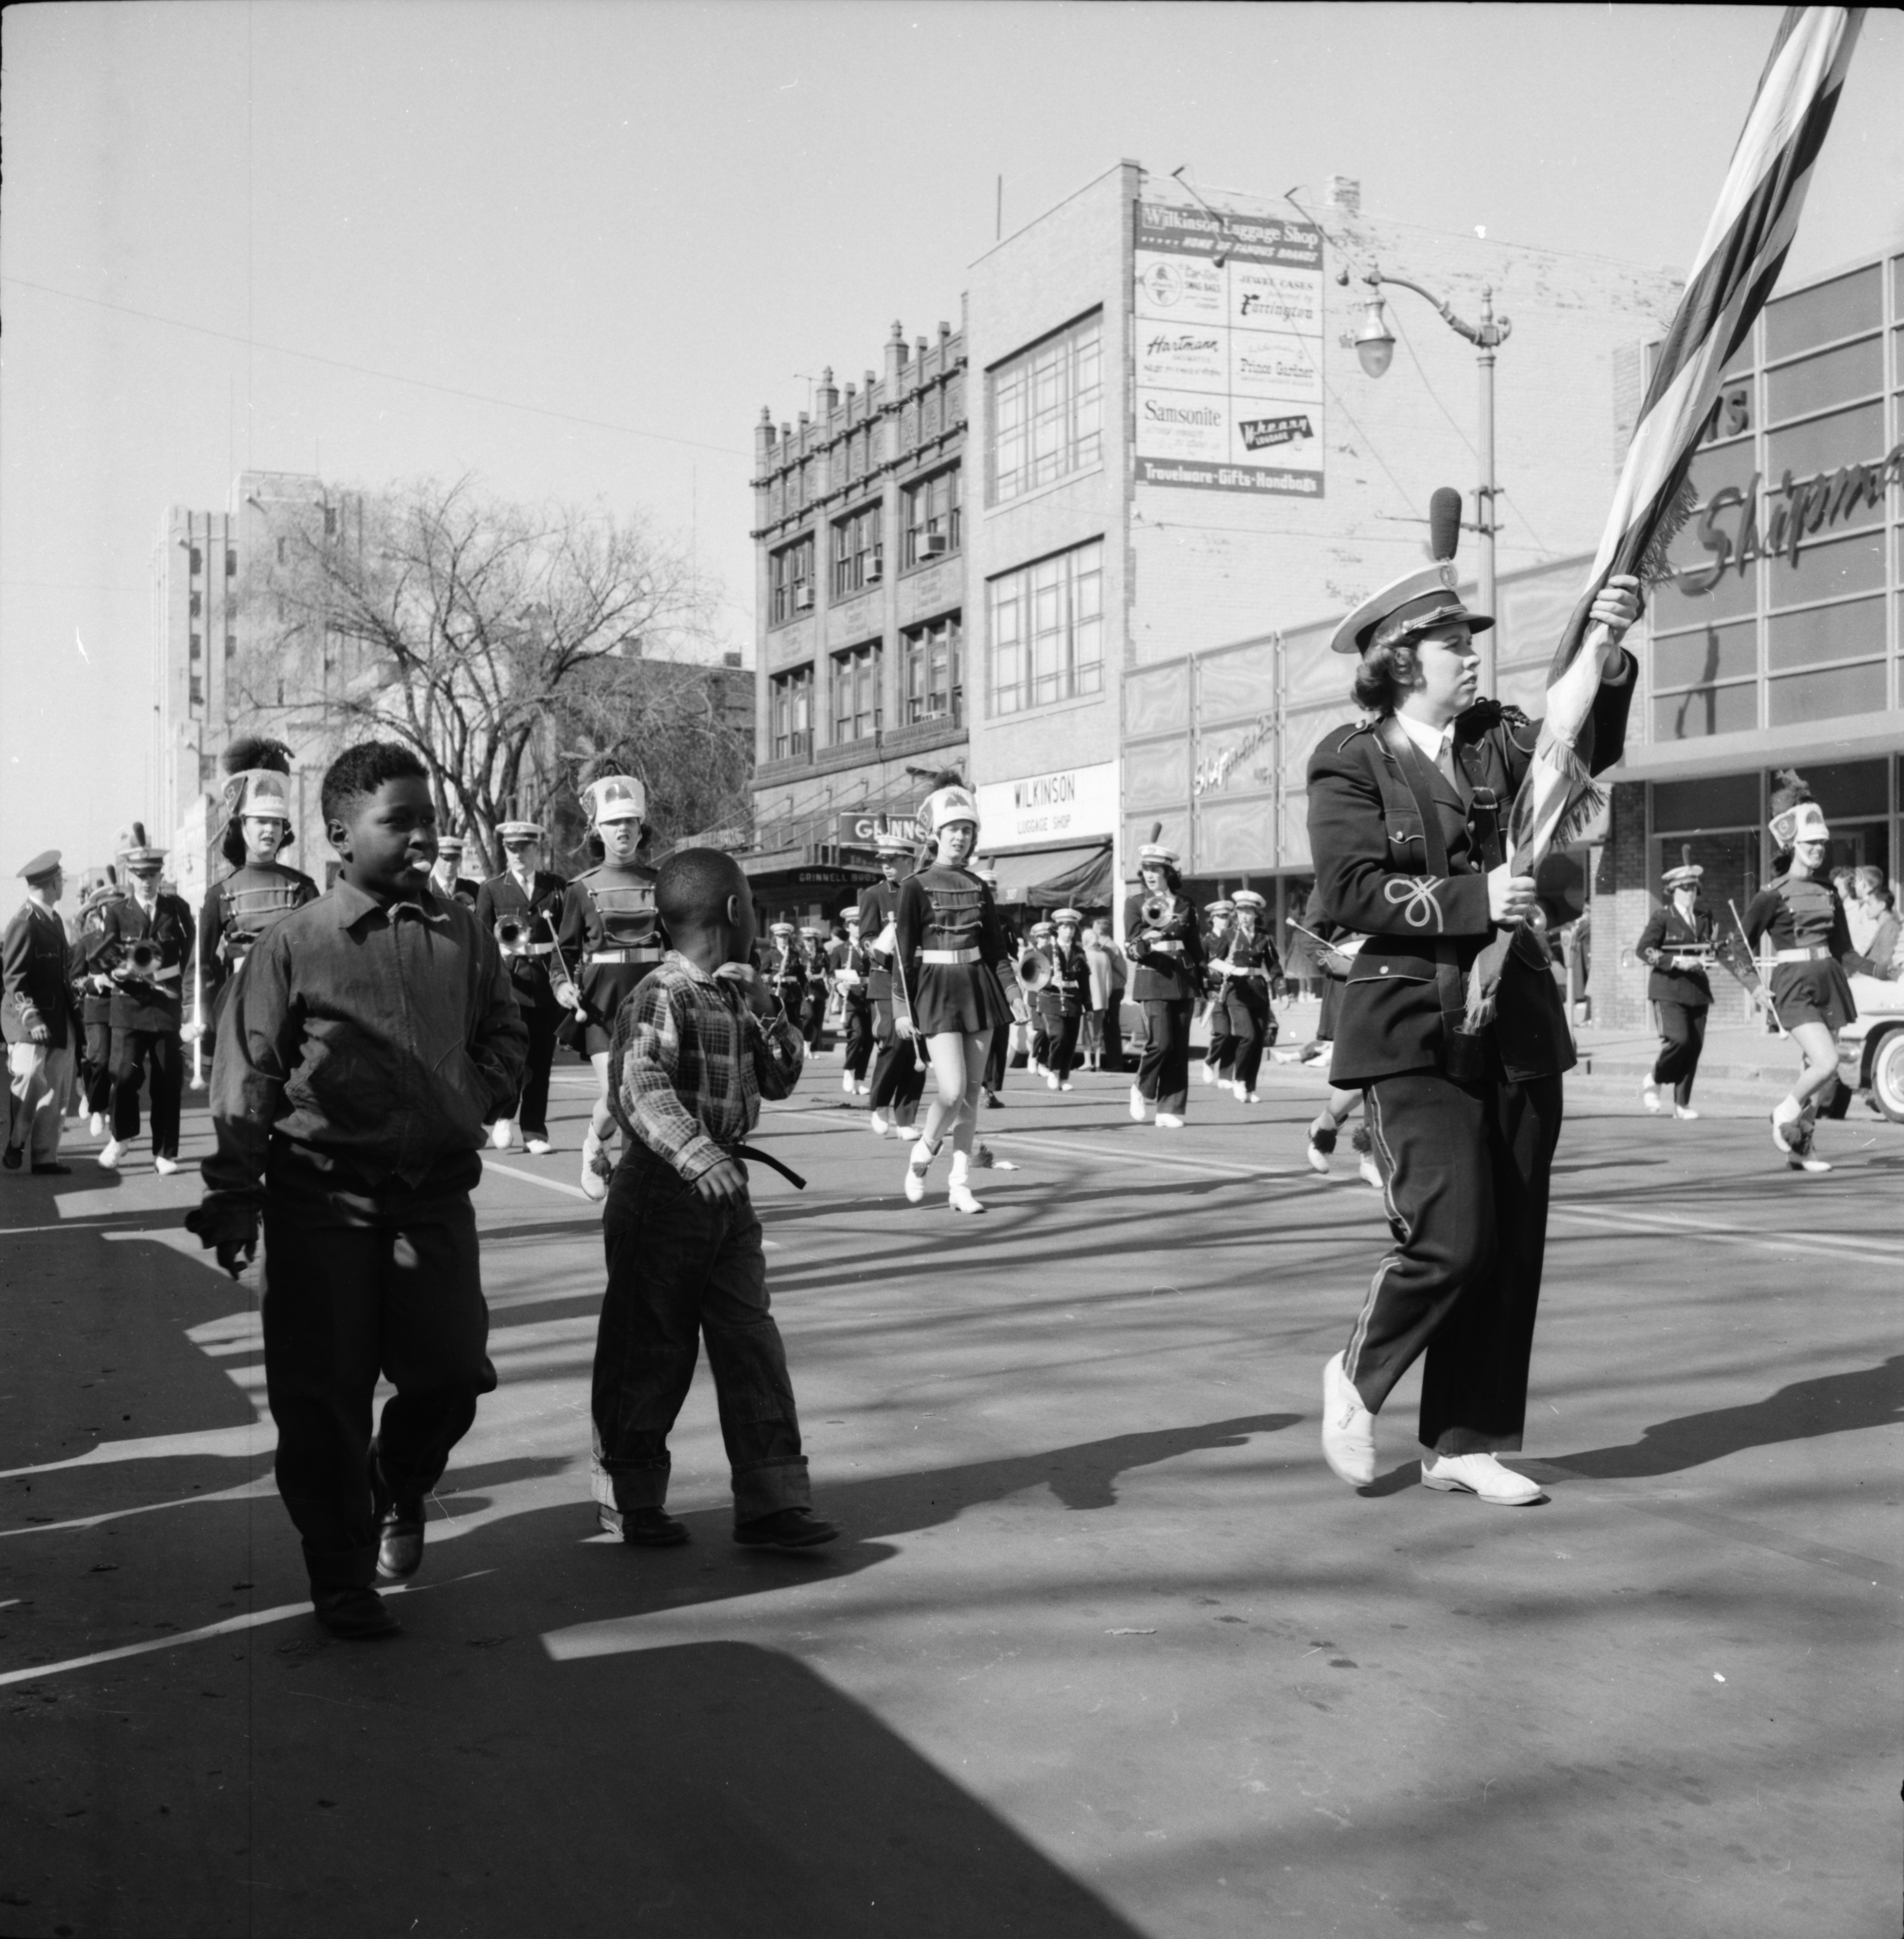 Marching with the Marching Band in the Michigras Parade, April 1958 image